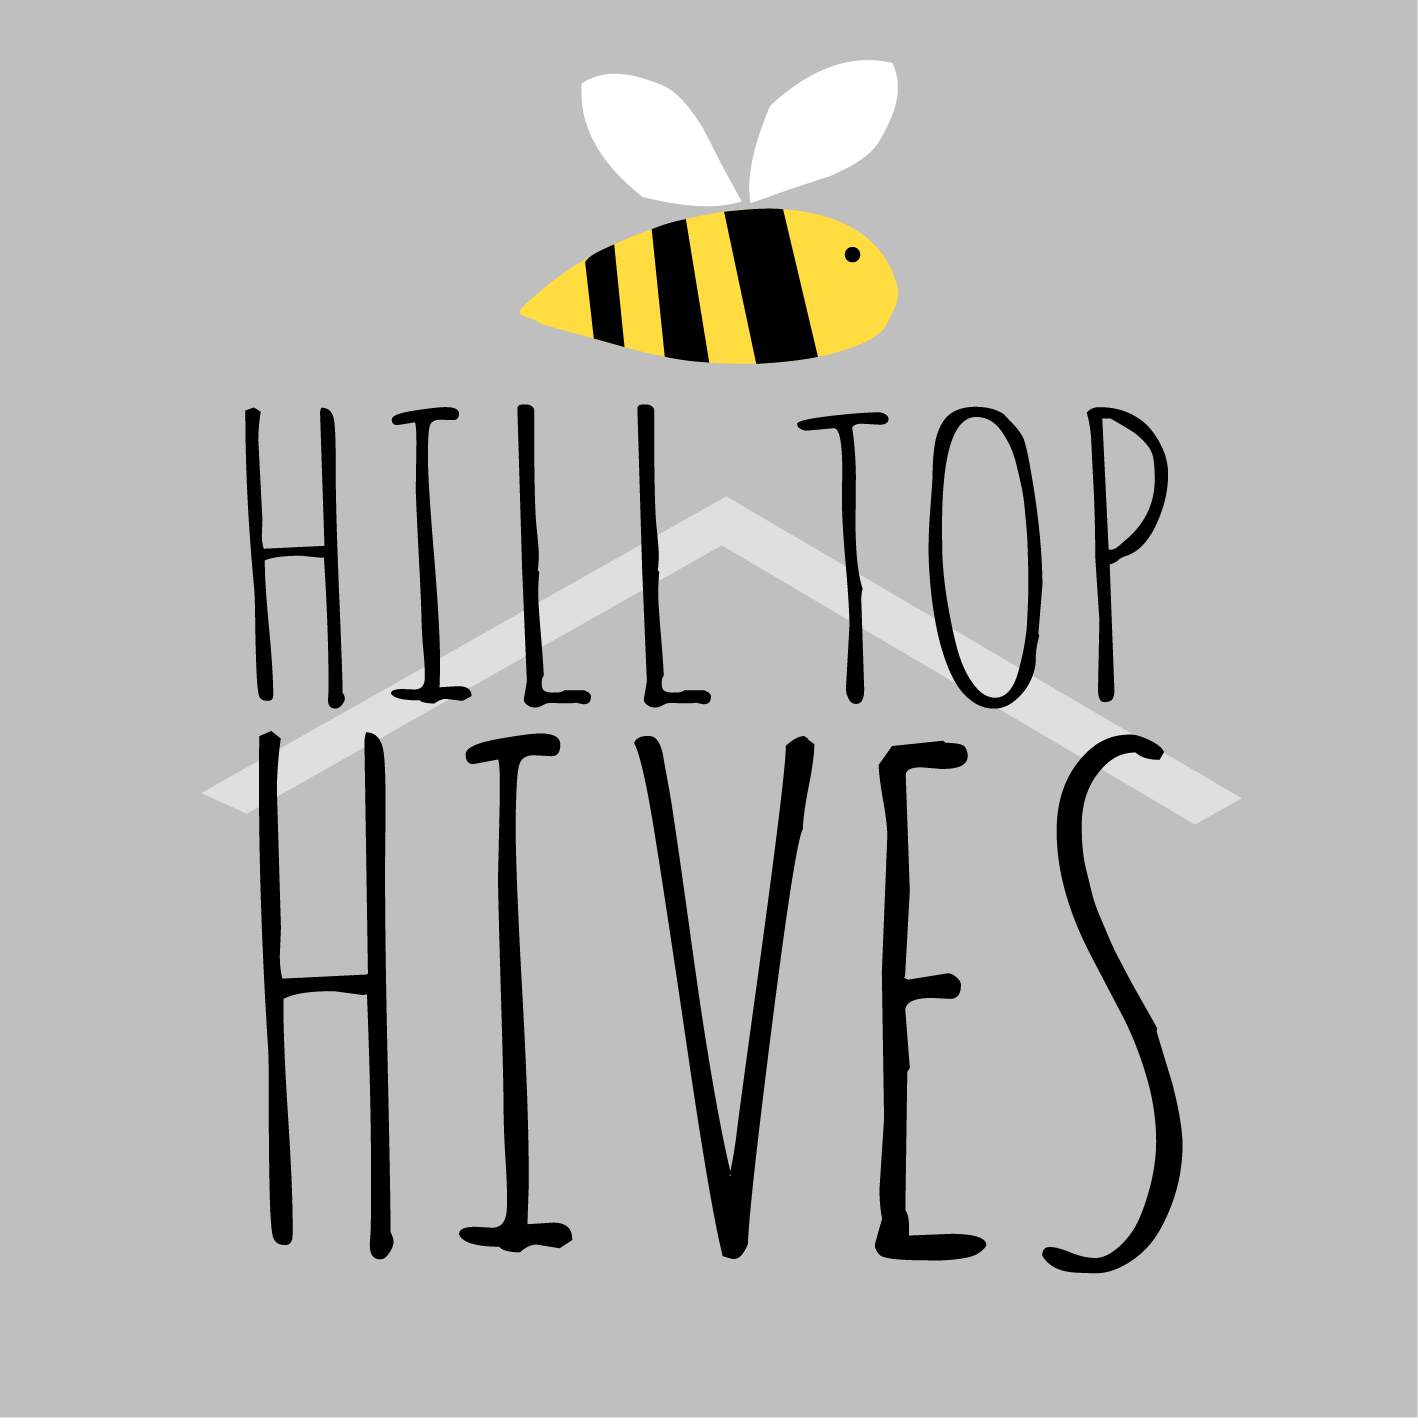 Hill Top Hives